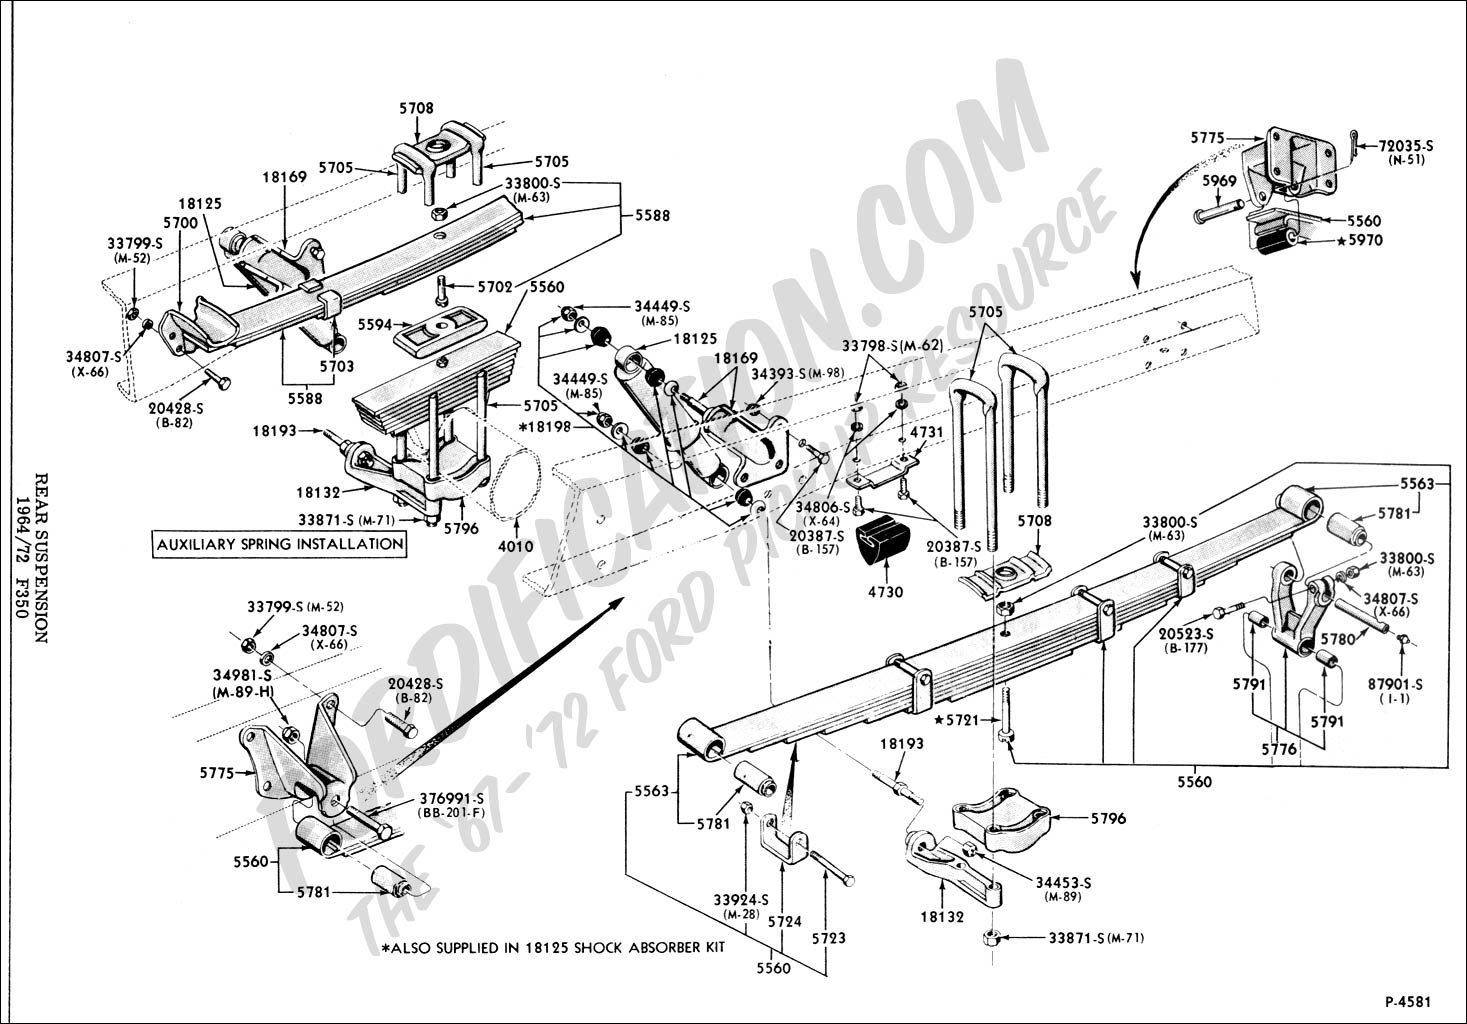 Pontiac Solstice Blower Motor Location further P0108 jeep liberty v6 3 7 together with Front Axle Replacement Cost likewise One Wire Alternator Wiring Diagram Chevy Inside Ford Alternator Wiring Diagram moreover 154120 Intake Manifold Runner Control Stuck Open Help 3. on 2003 mazda 6 engine diagram